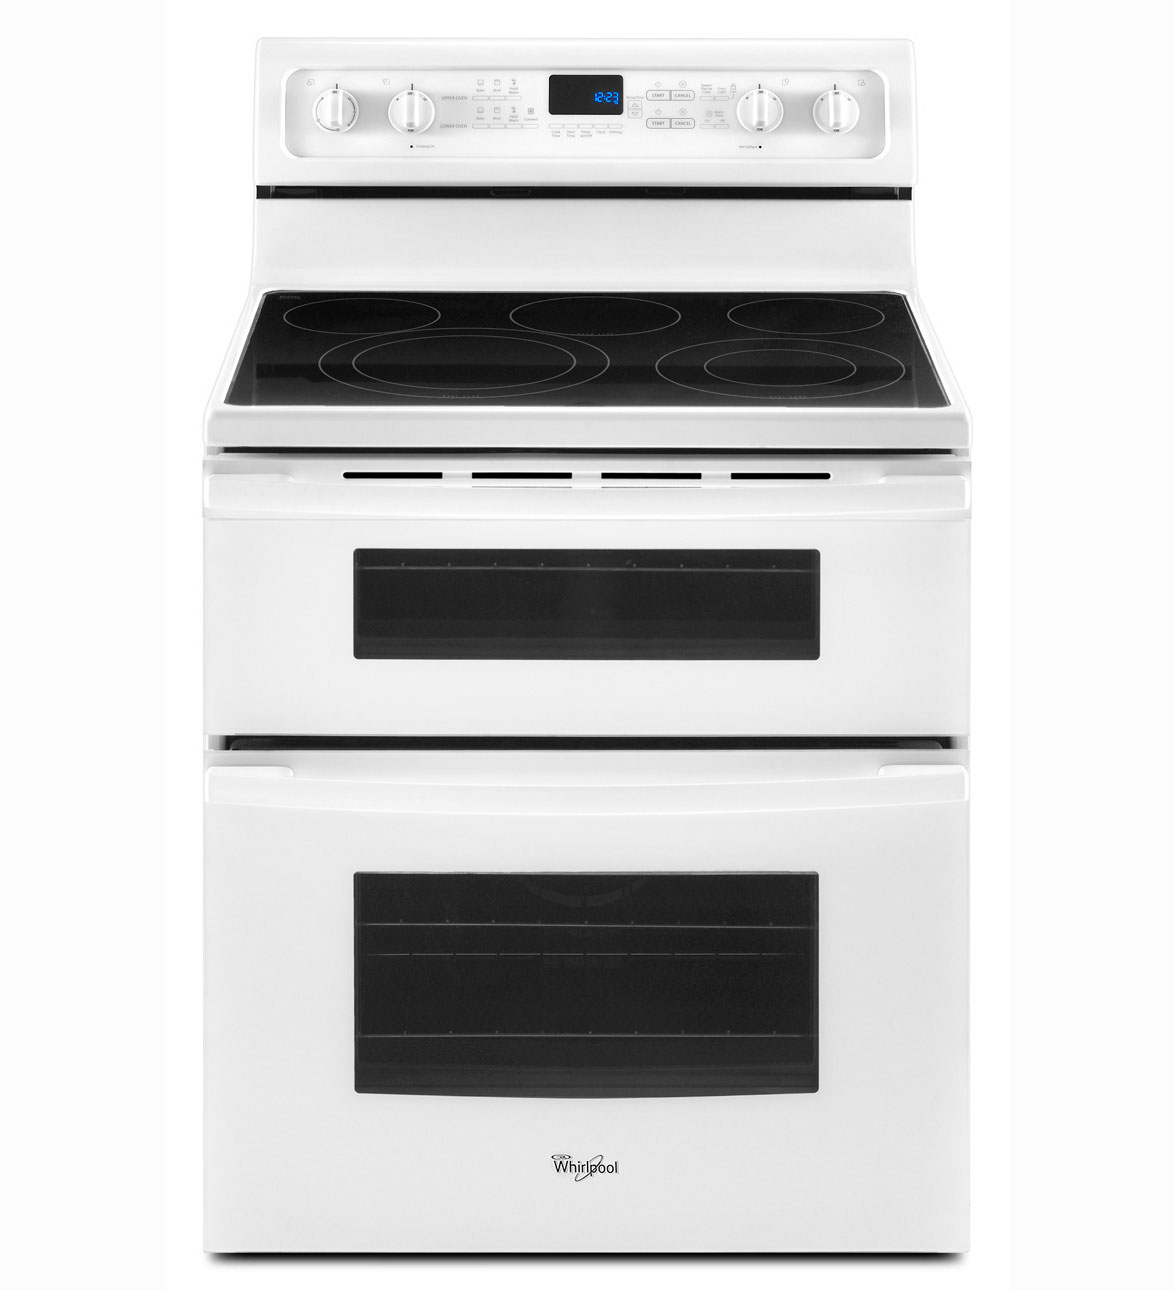 Gge390lxq Whirlpool 30electric Glass Top Double Oven Range White